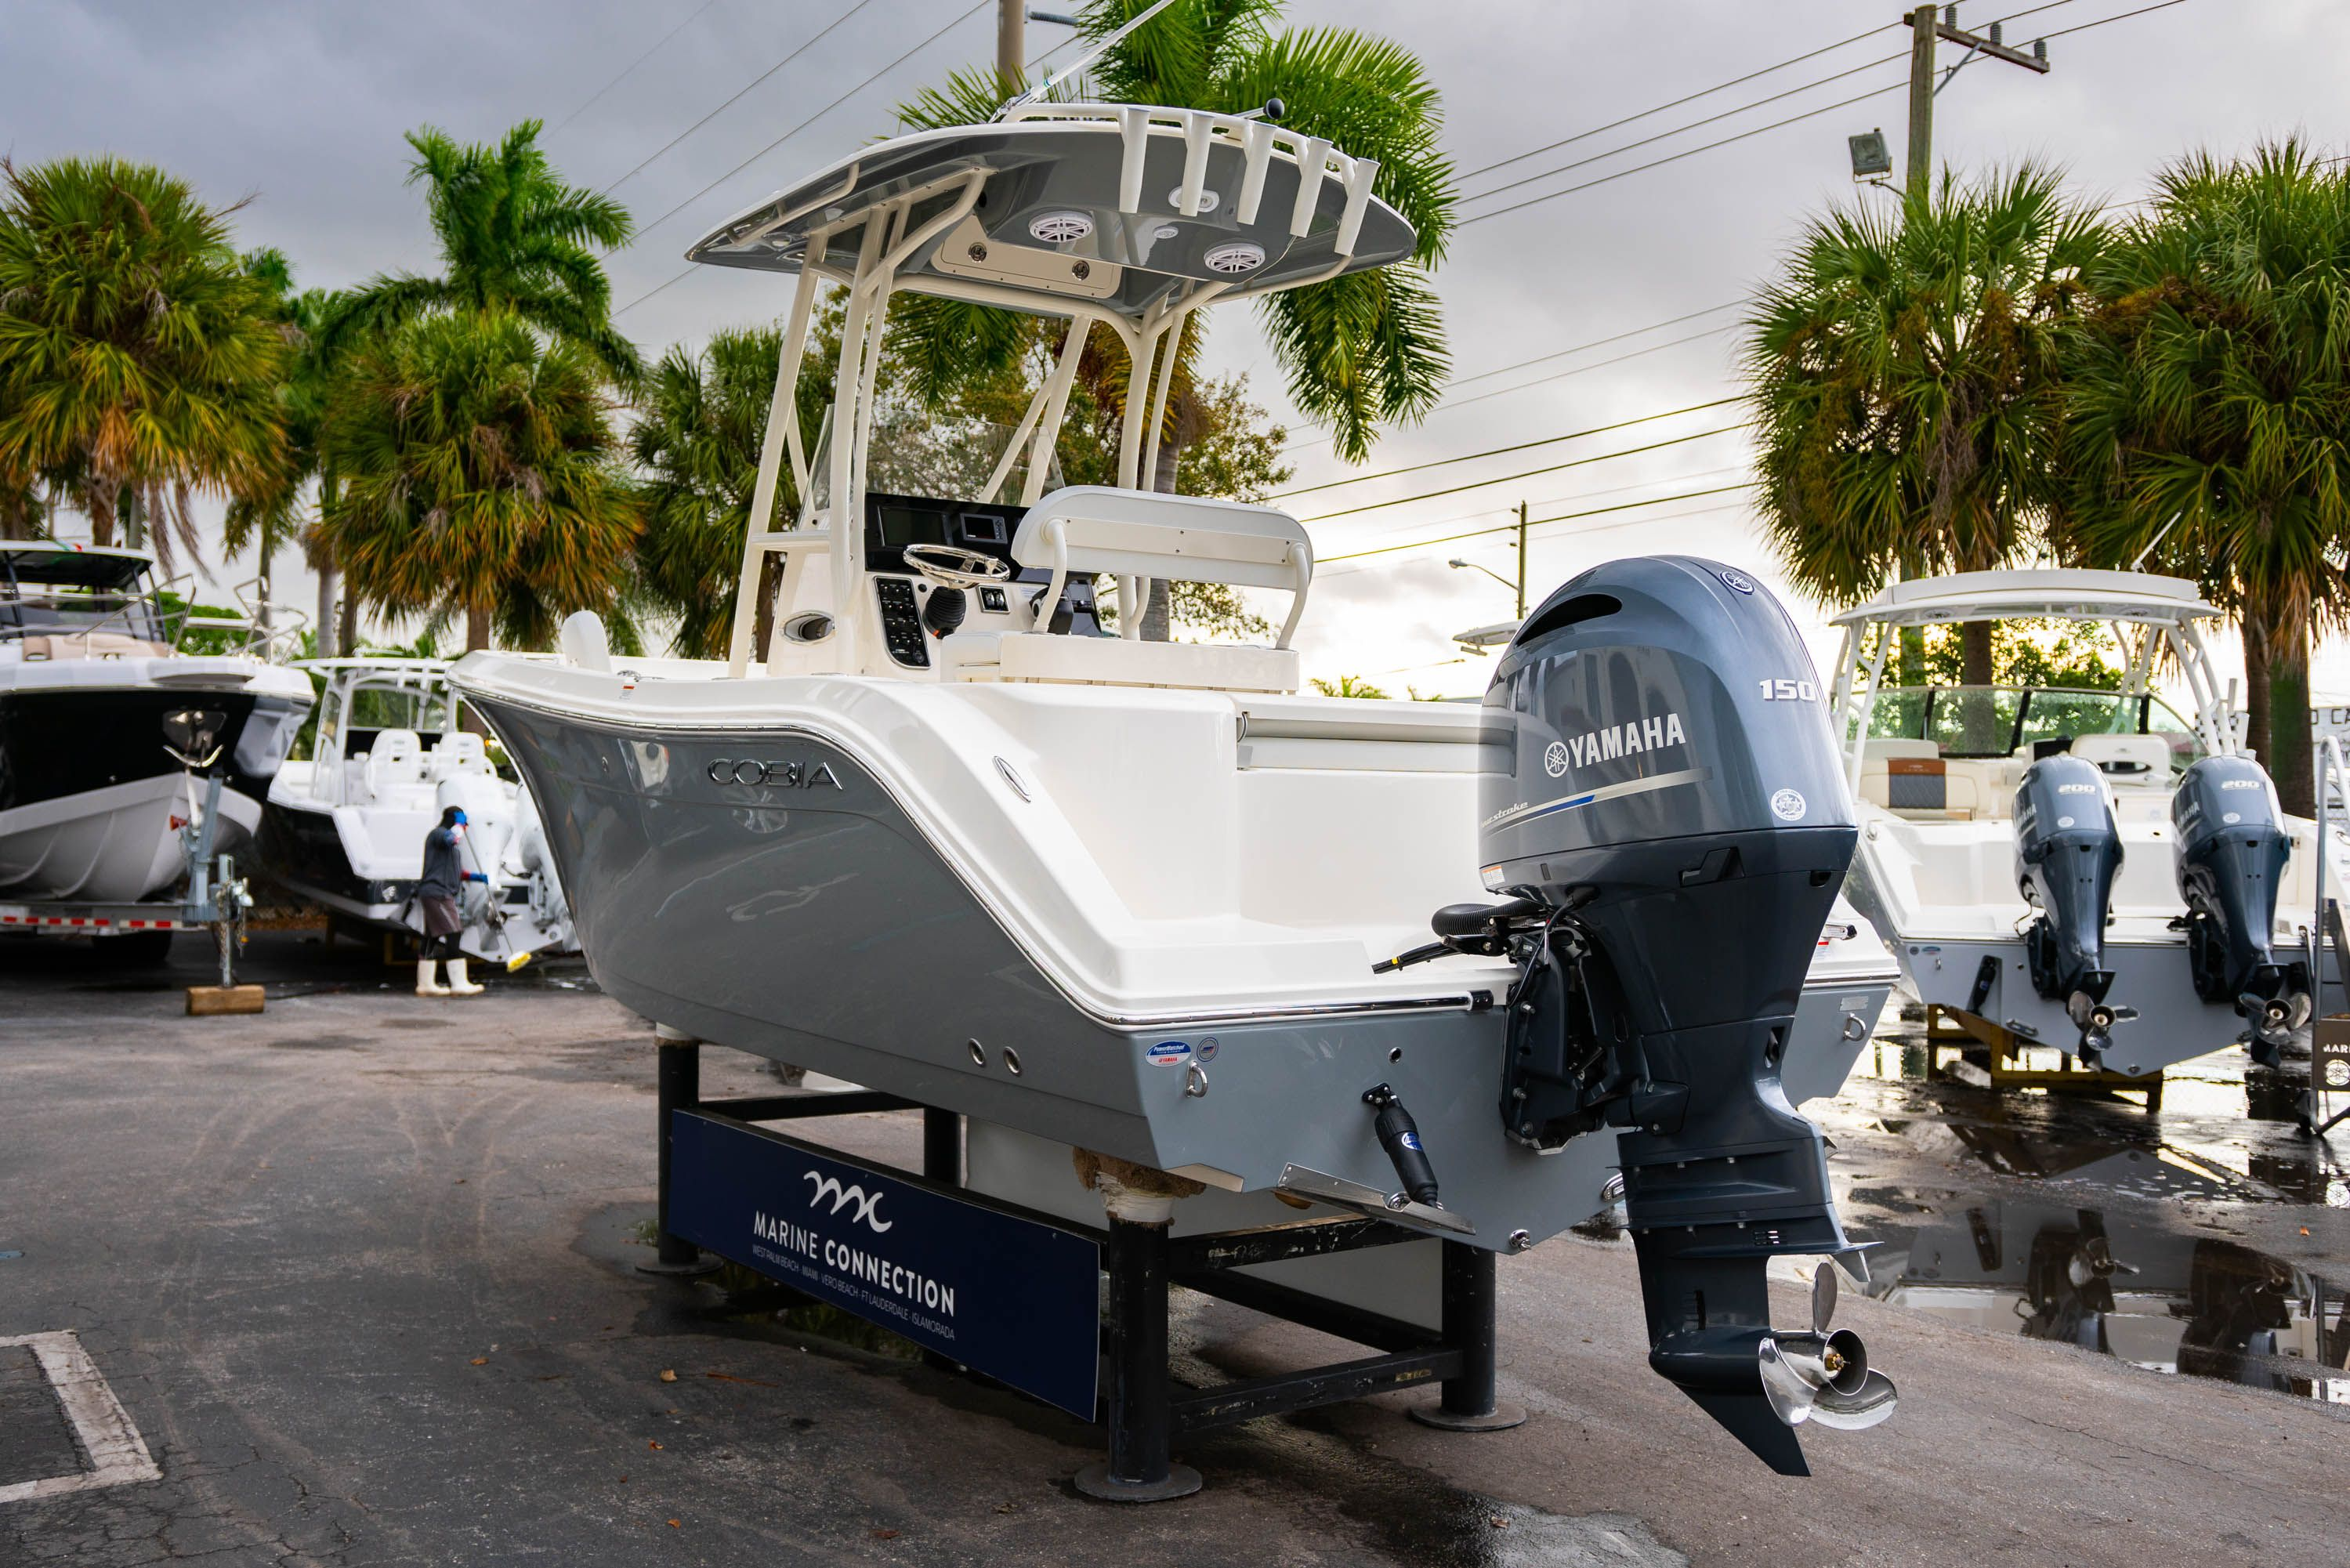 Thumbnail 5 for New 2020 Cobia 201 CC Center Console boat for sale in West Palm Beach, FL